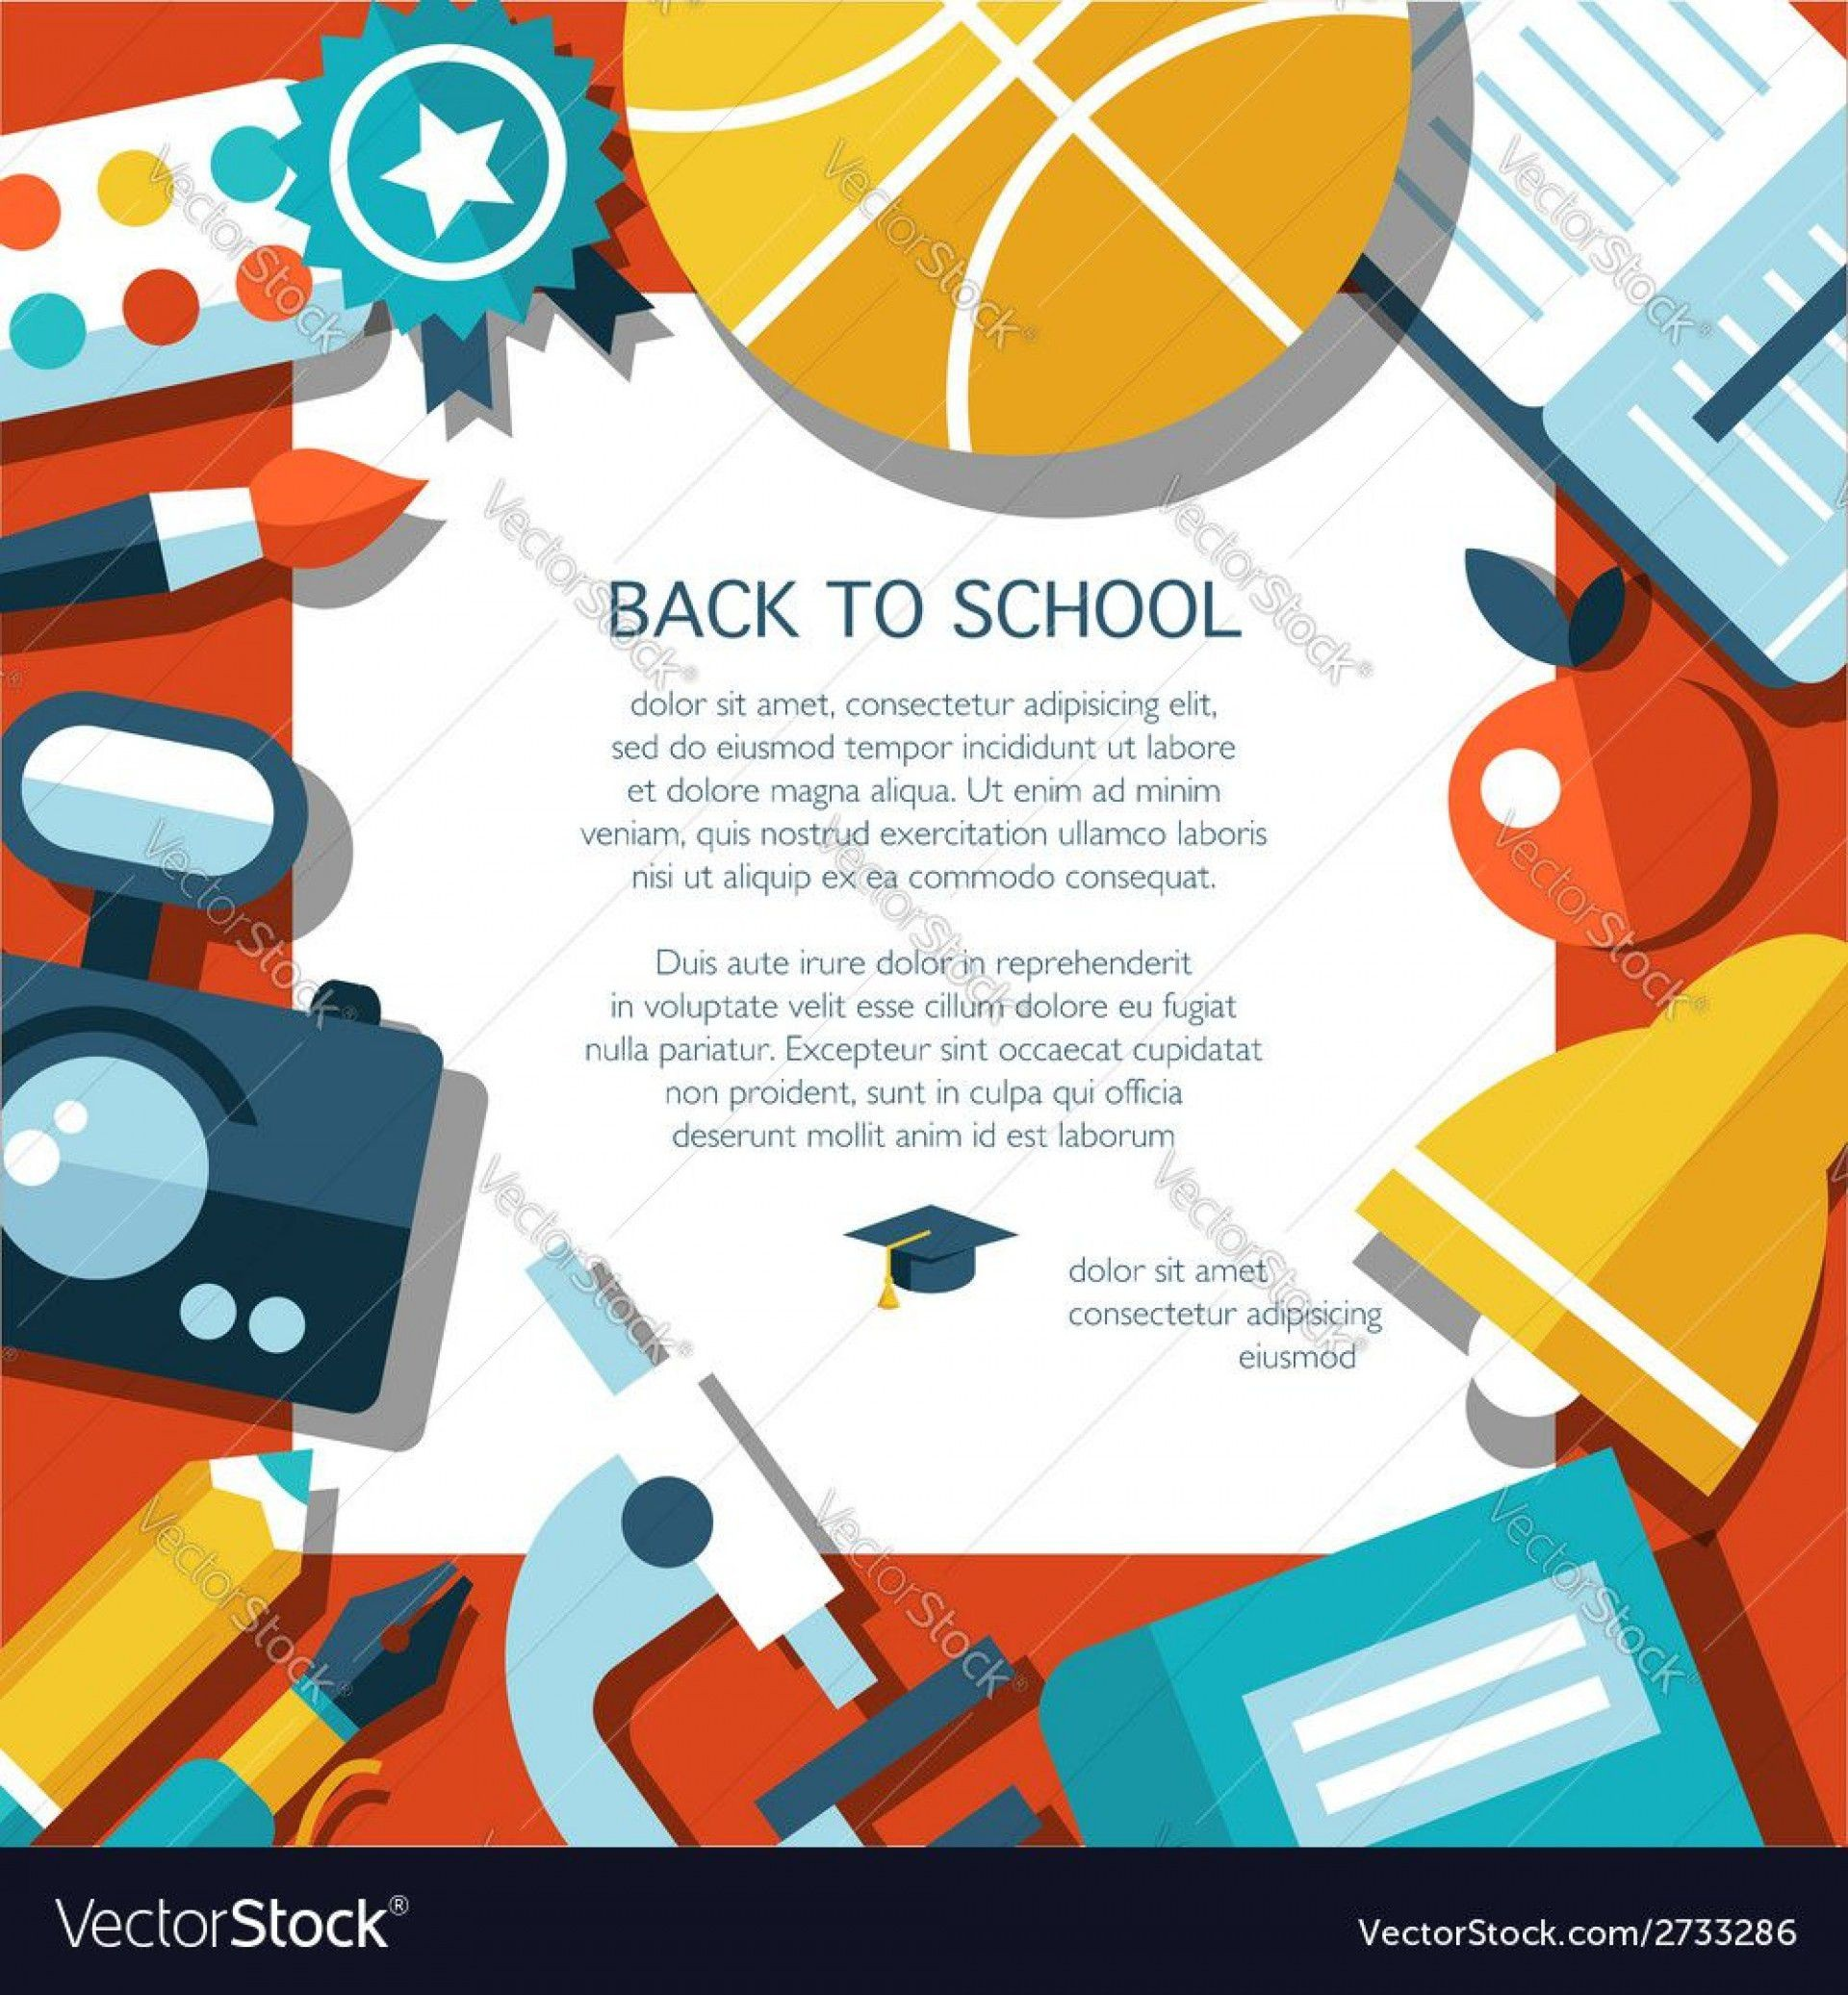 002 Impressive Free Back To School Flyer Template Word Picture 1920